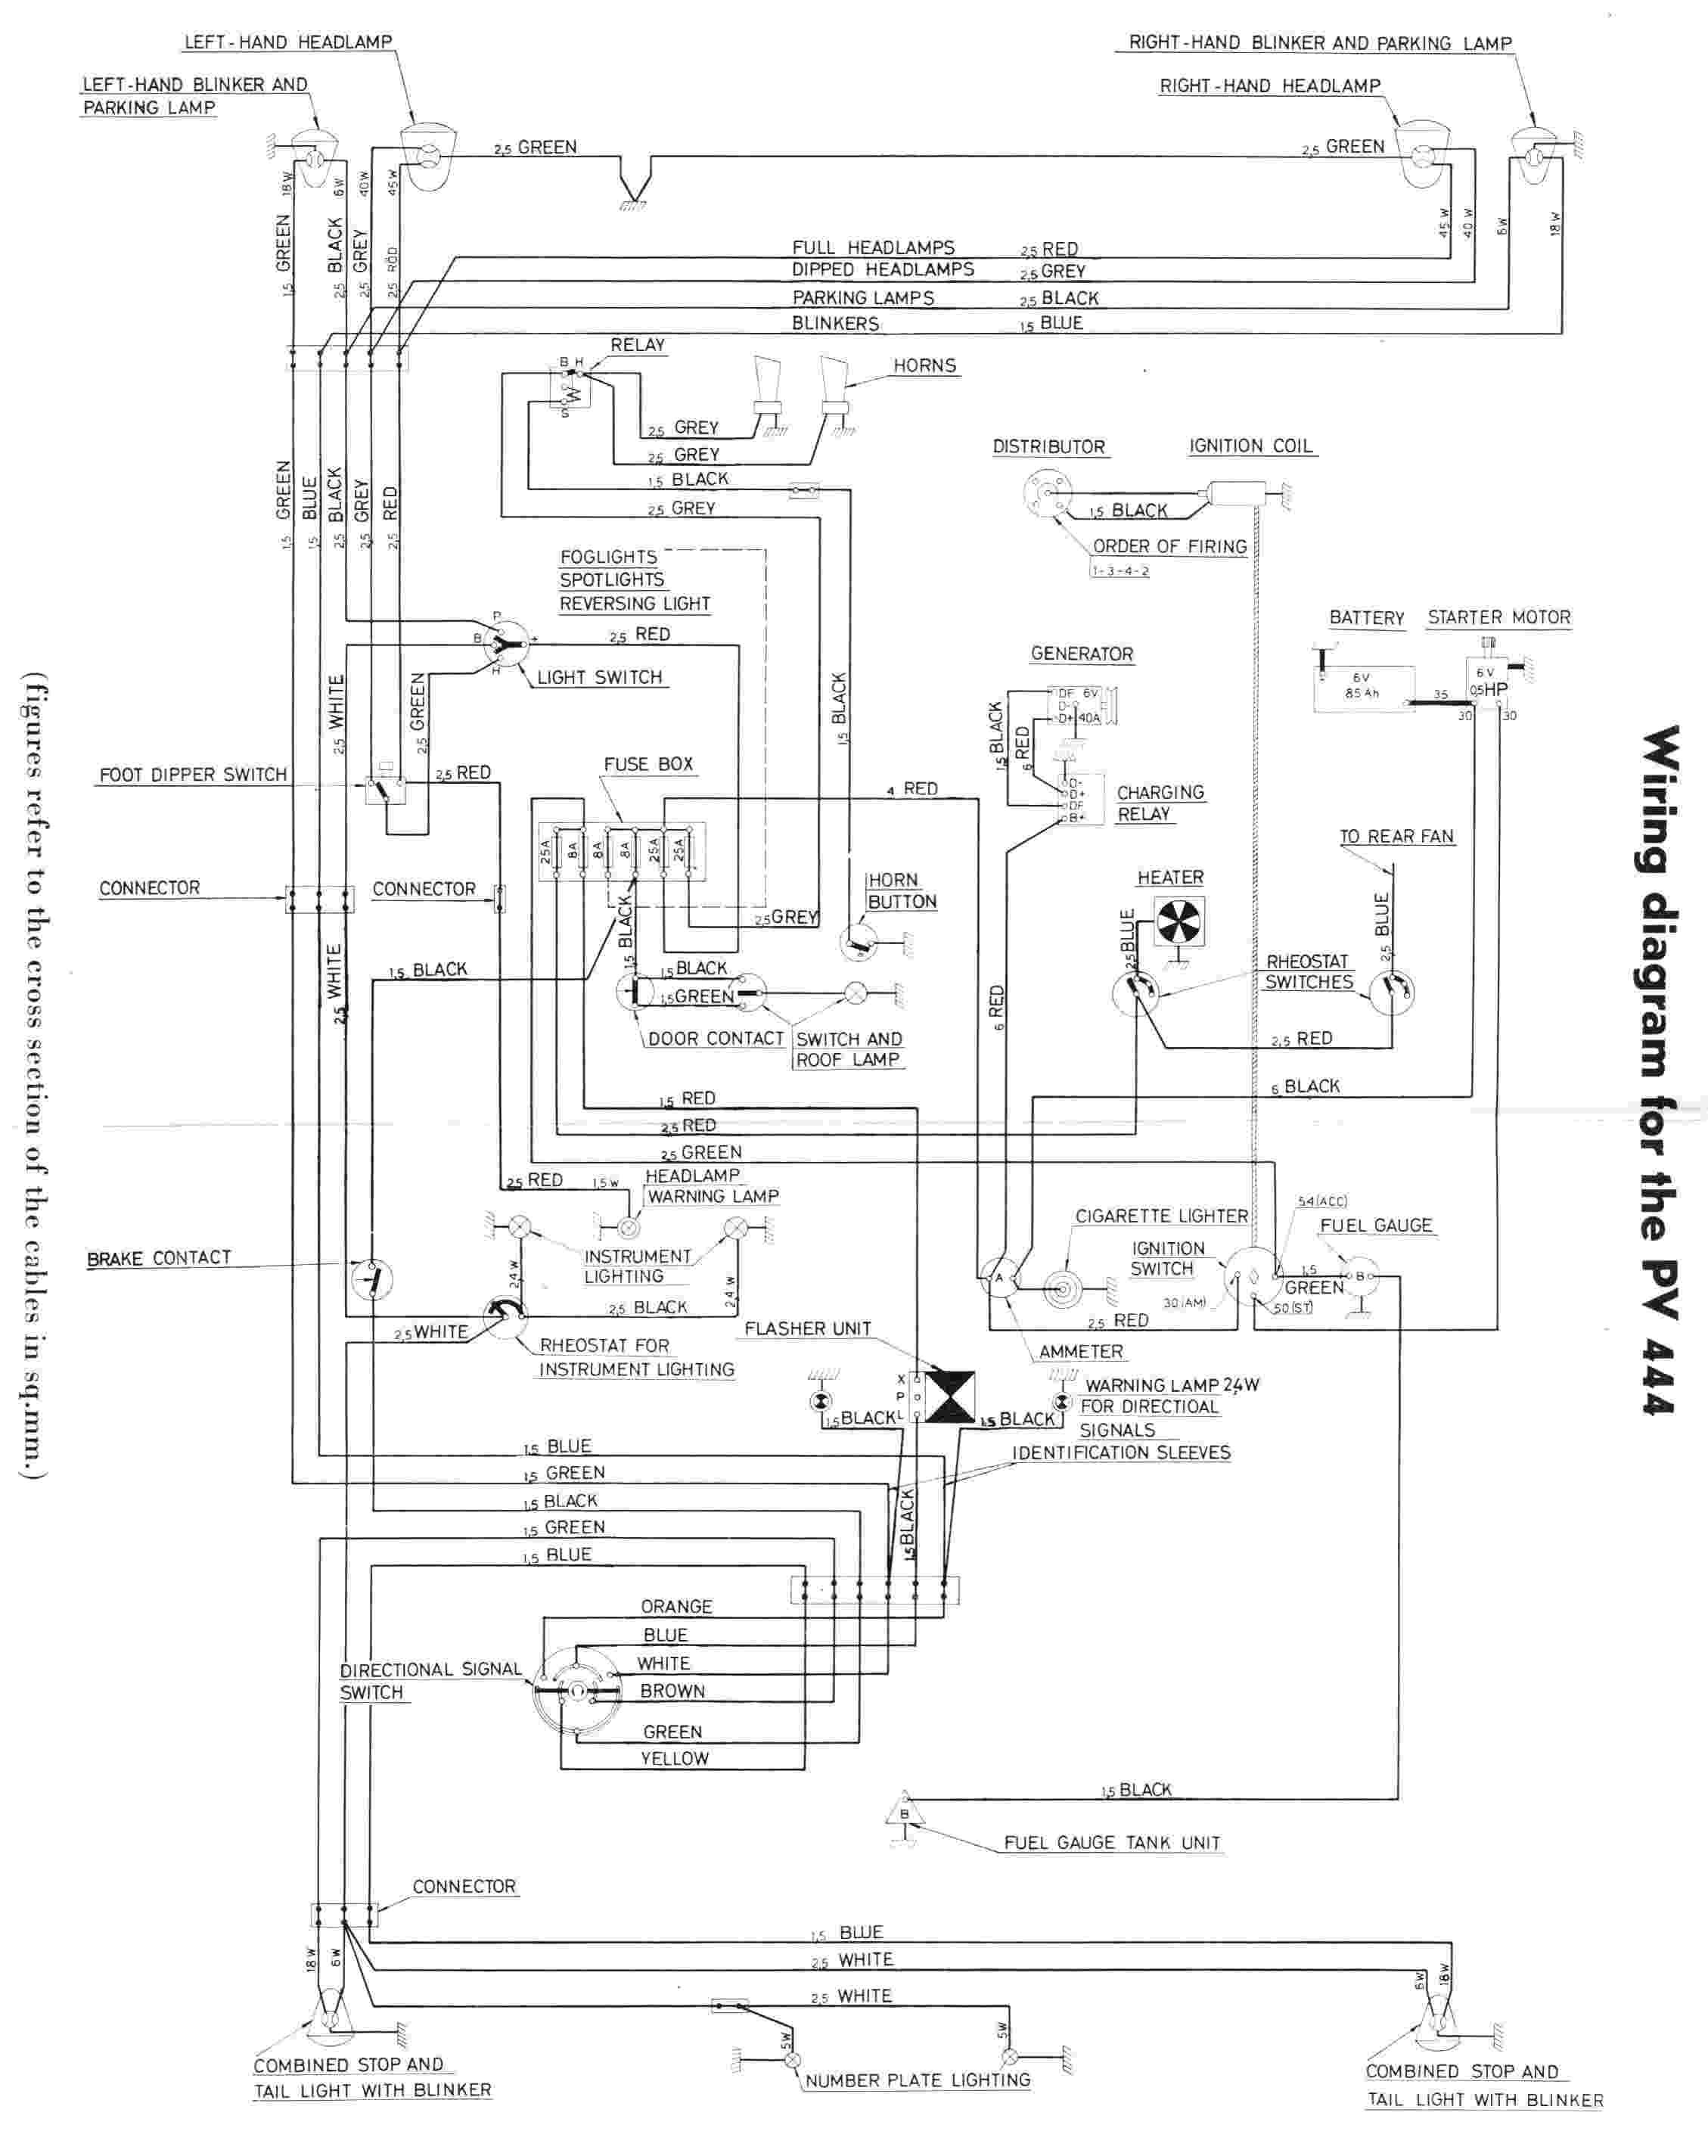 hight resolution of volvo amazon wiring diagram wiring diagram online rh 12 51 shareplm de volvo penta wiring schematics volvo xc70 electrical diagrams